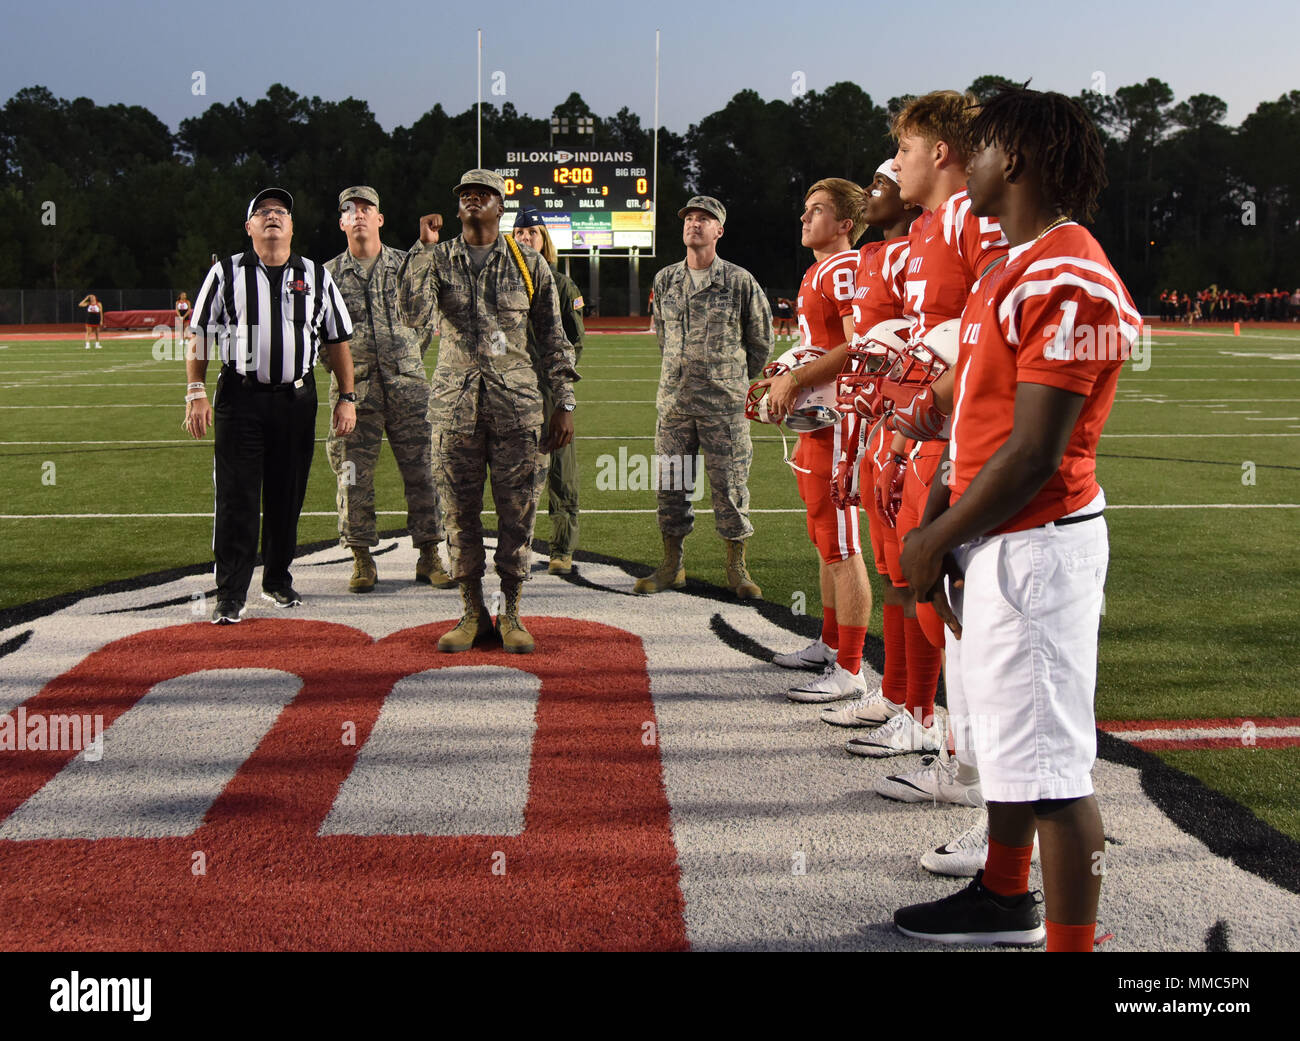 Keesler Leadership And Personnel Participate In A Coin Toss